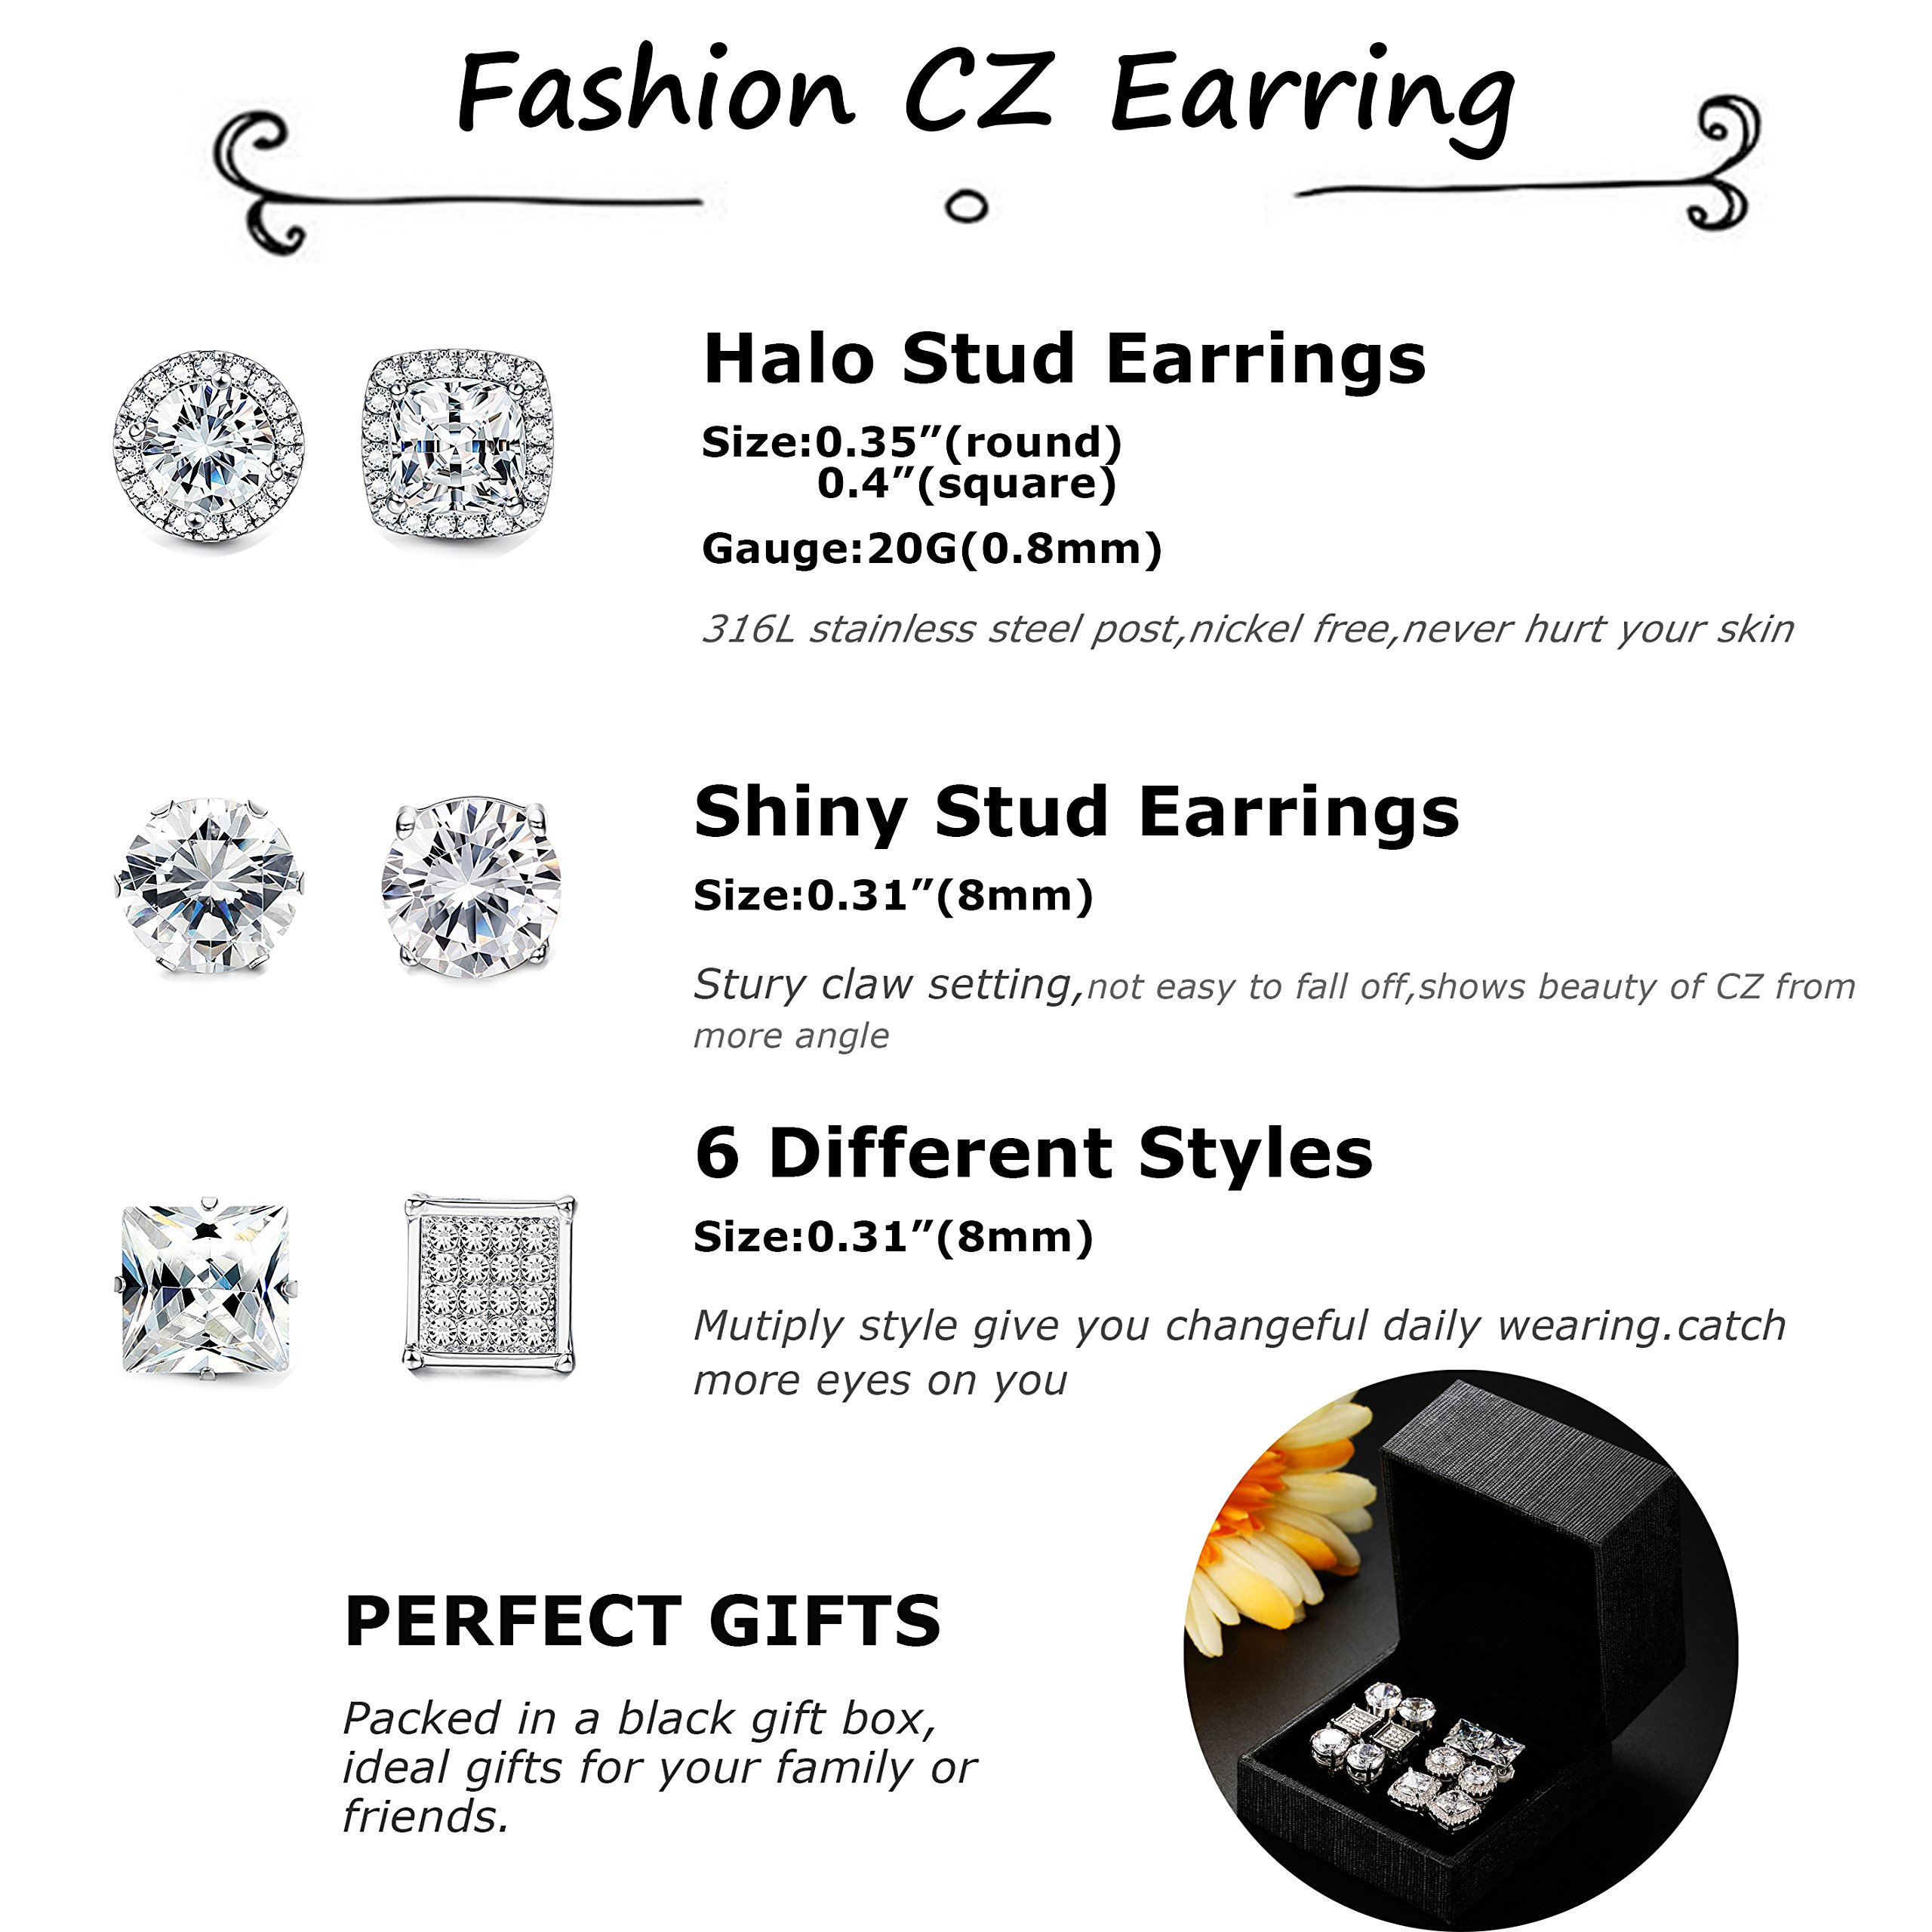 Jstyle Halo Cubic Zirconia Stud Earrings for Women Girls Clear CZ Round Square Stud Earrings Set Ear Jewelry by Jstyle (Image #2)